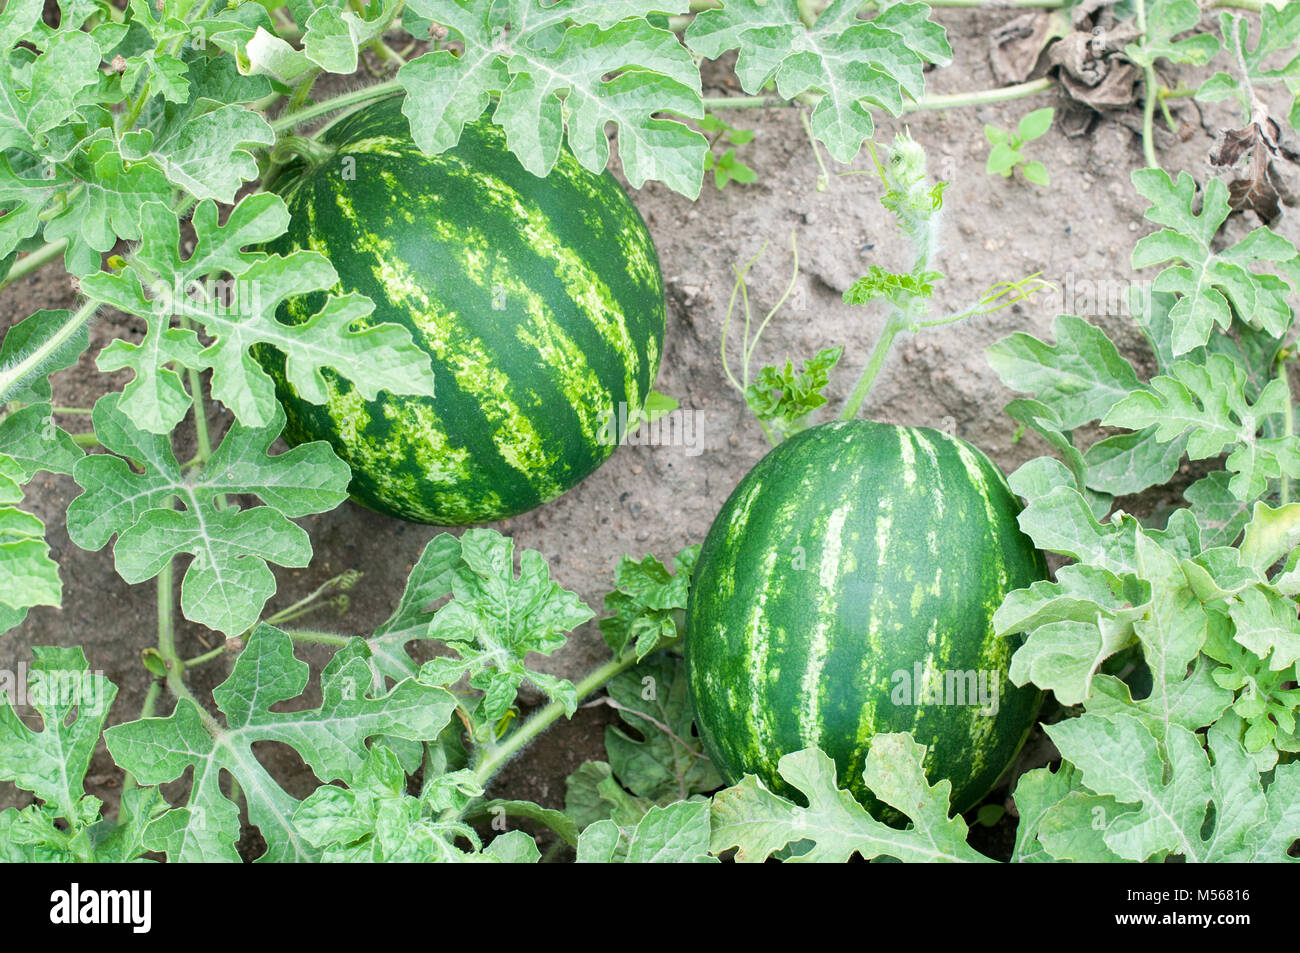 how to draw a watermelon plant